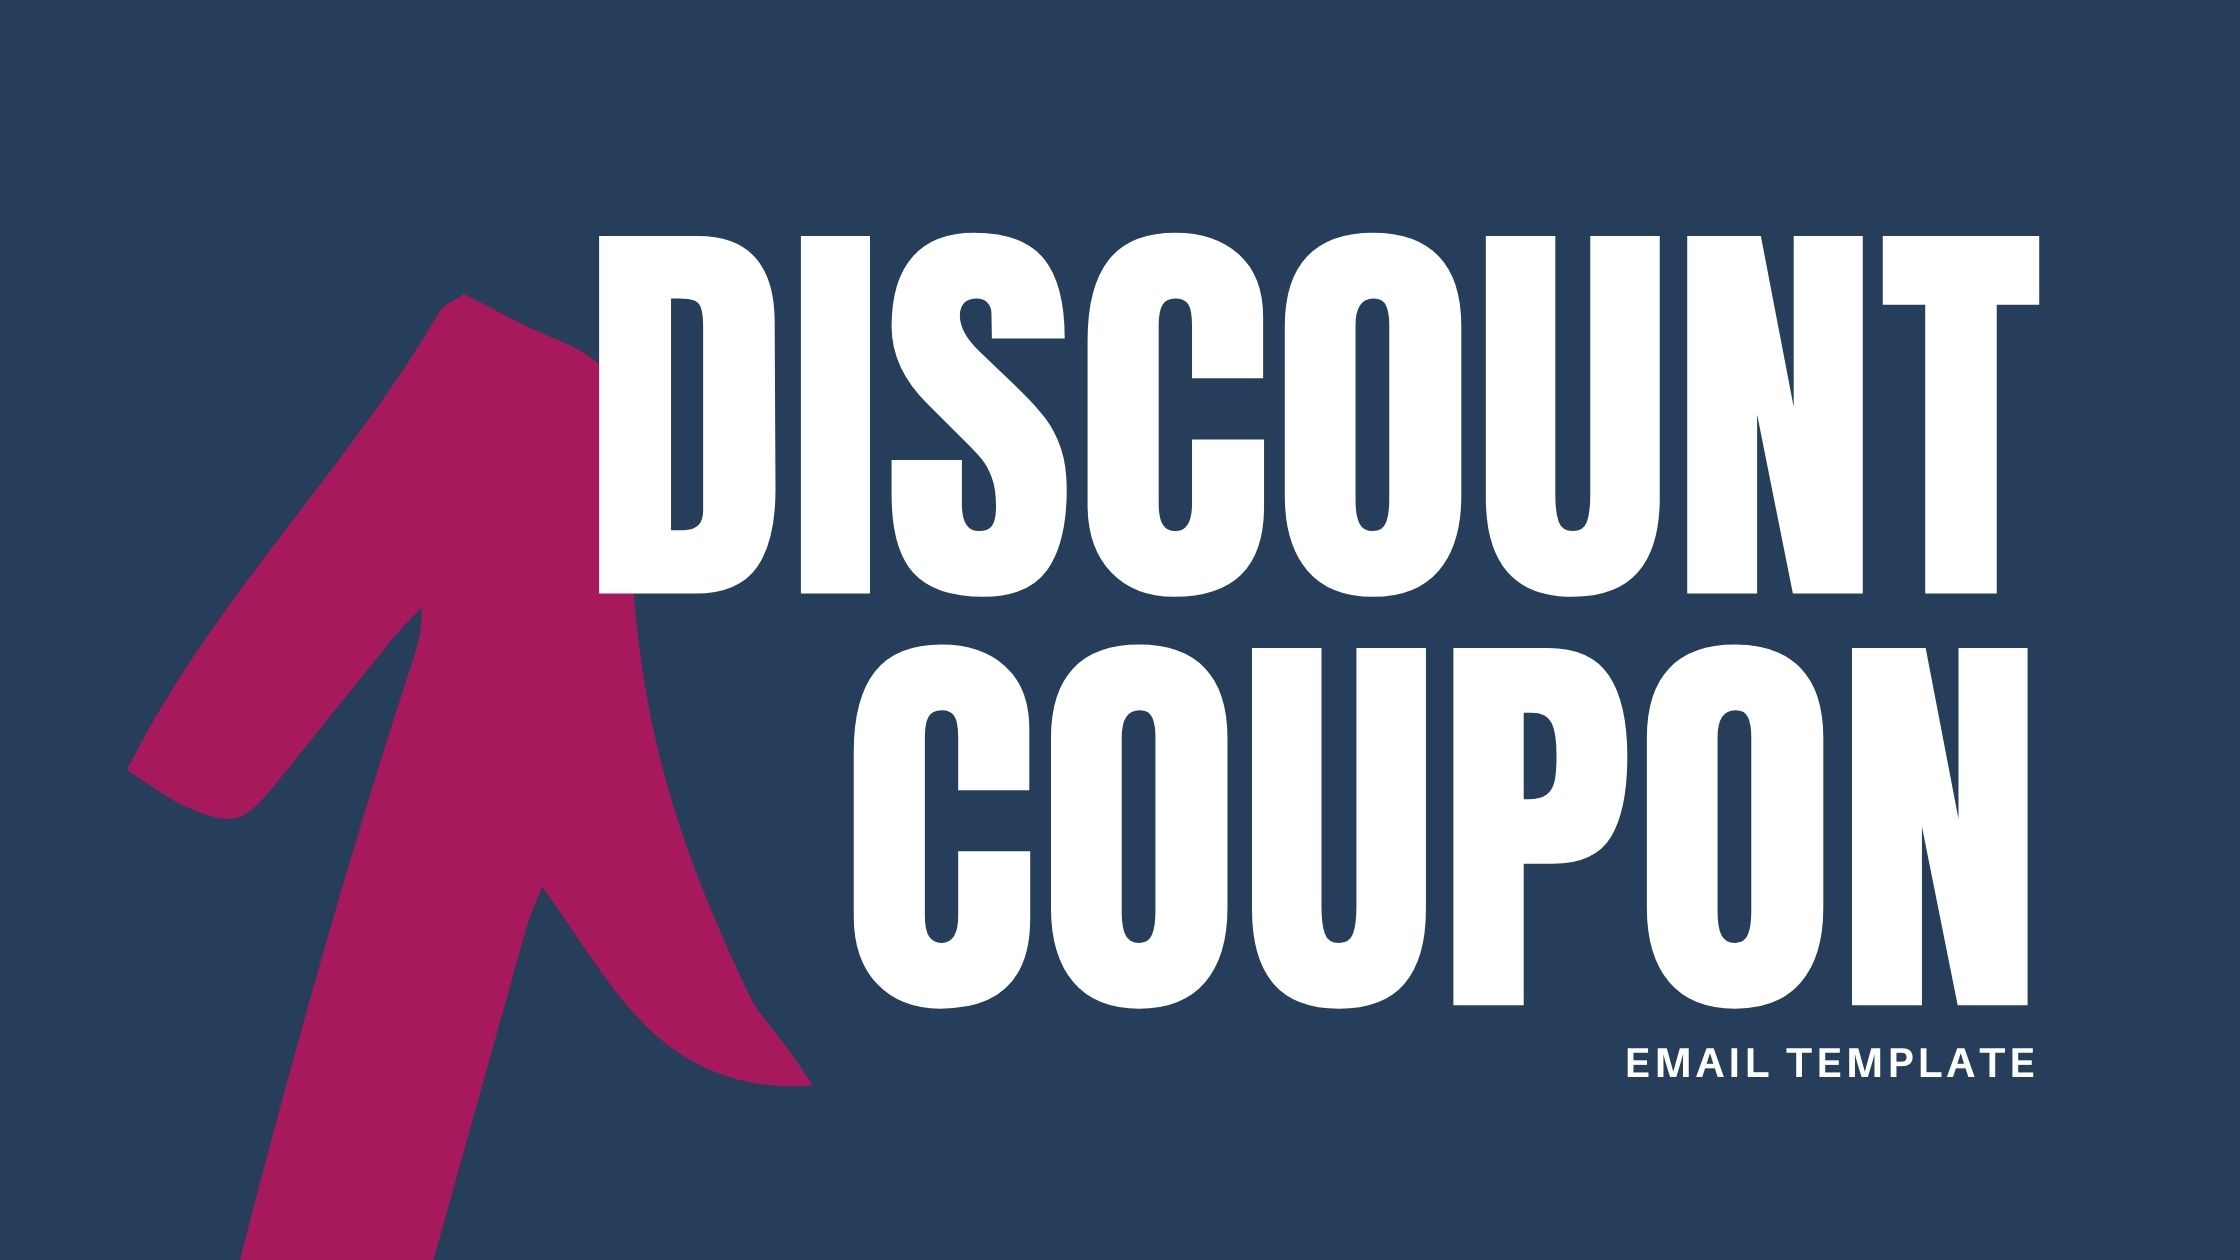 DISCOUNT COUPON EMAIL TEMPLATE